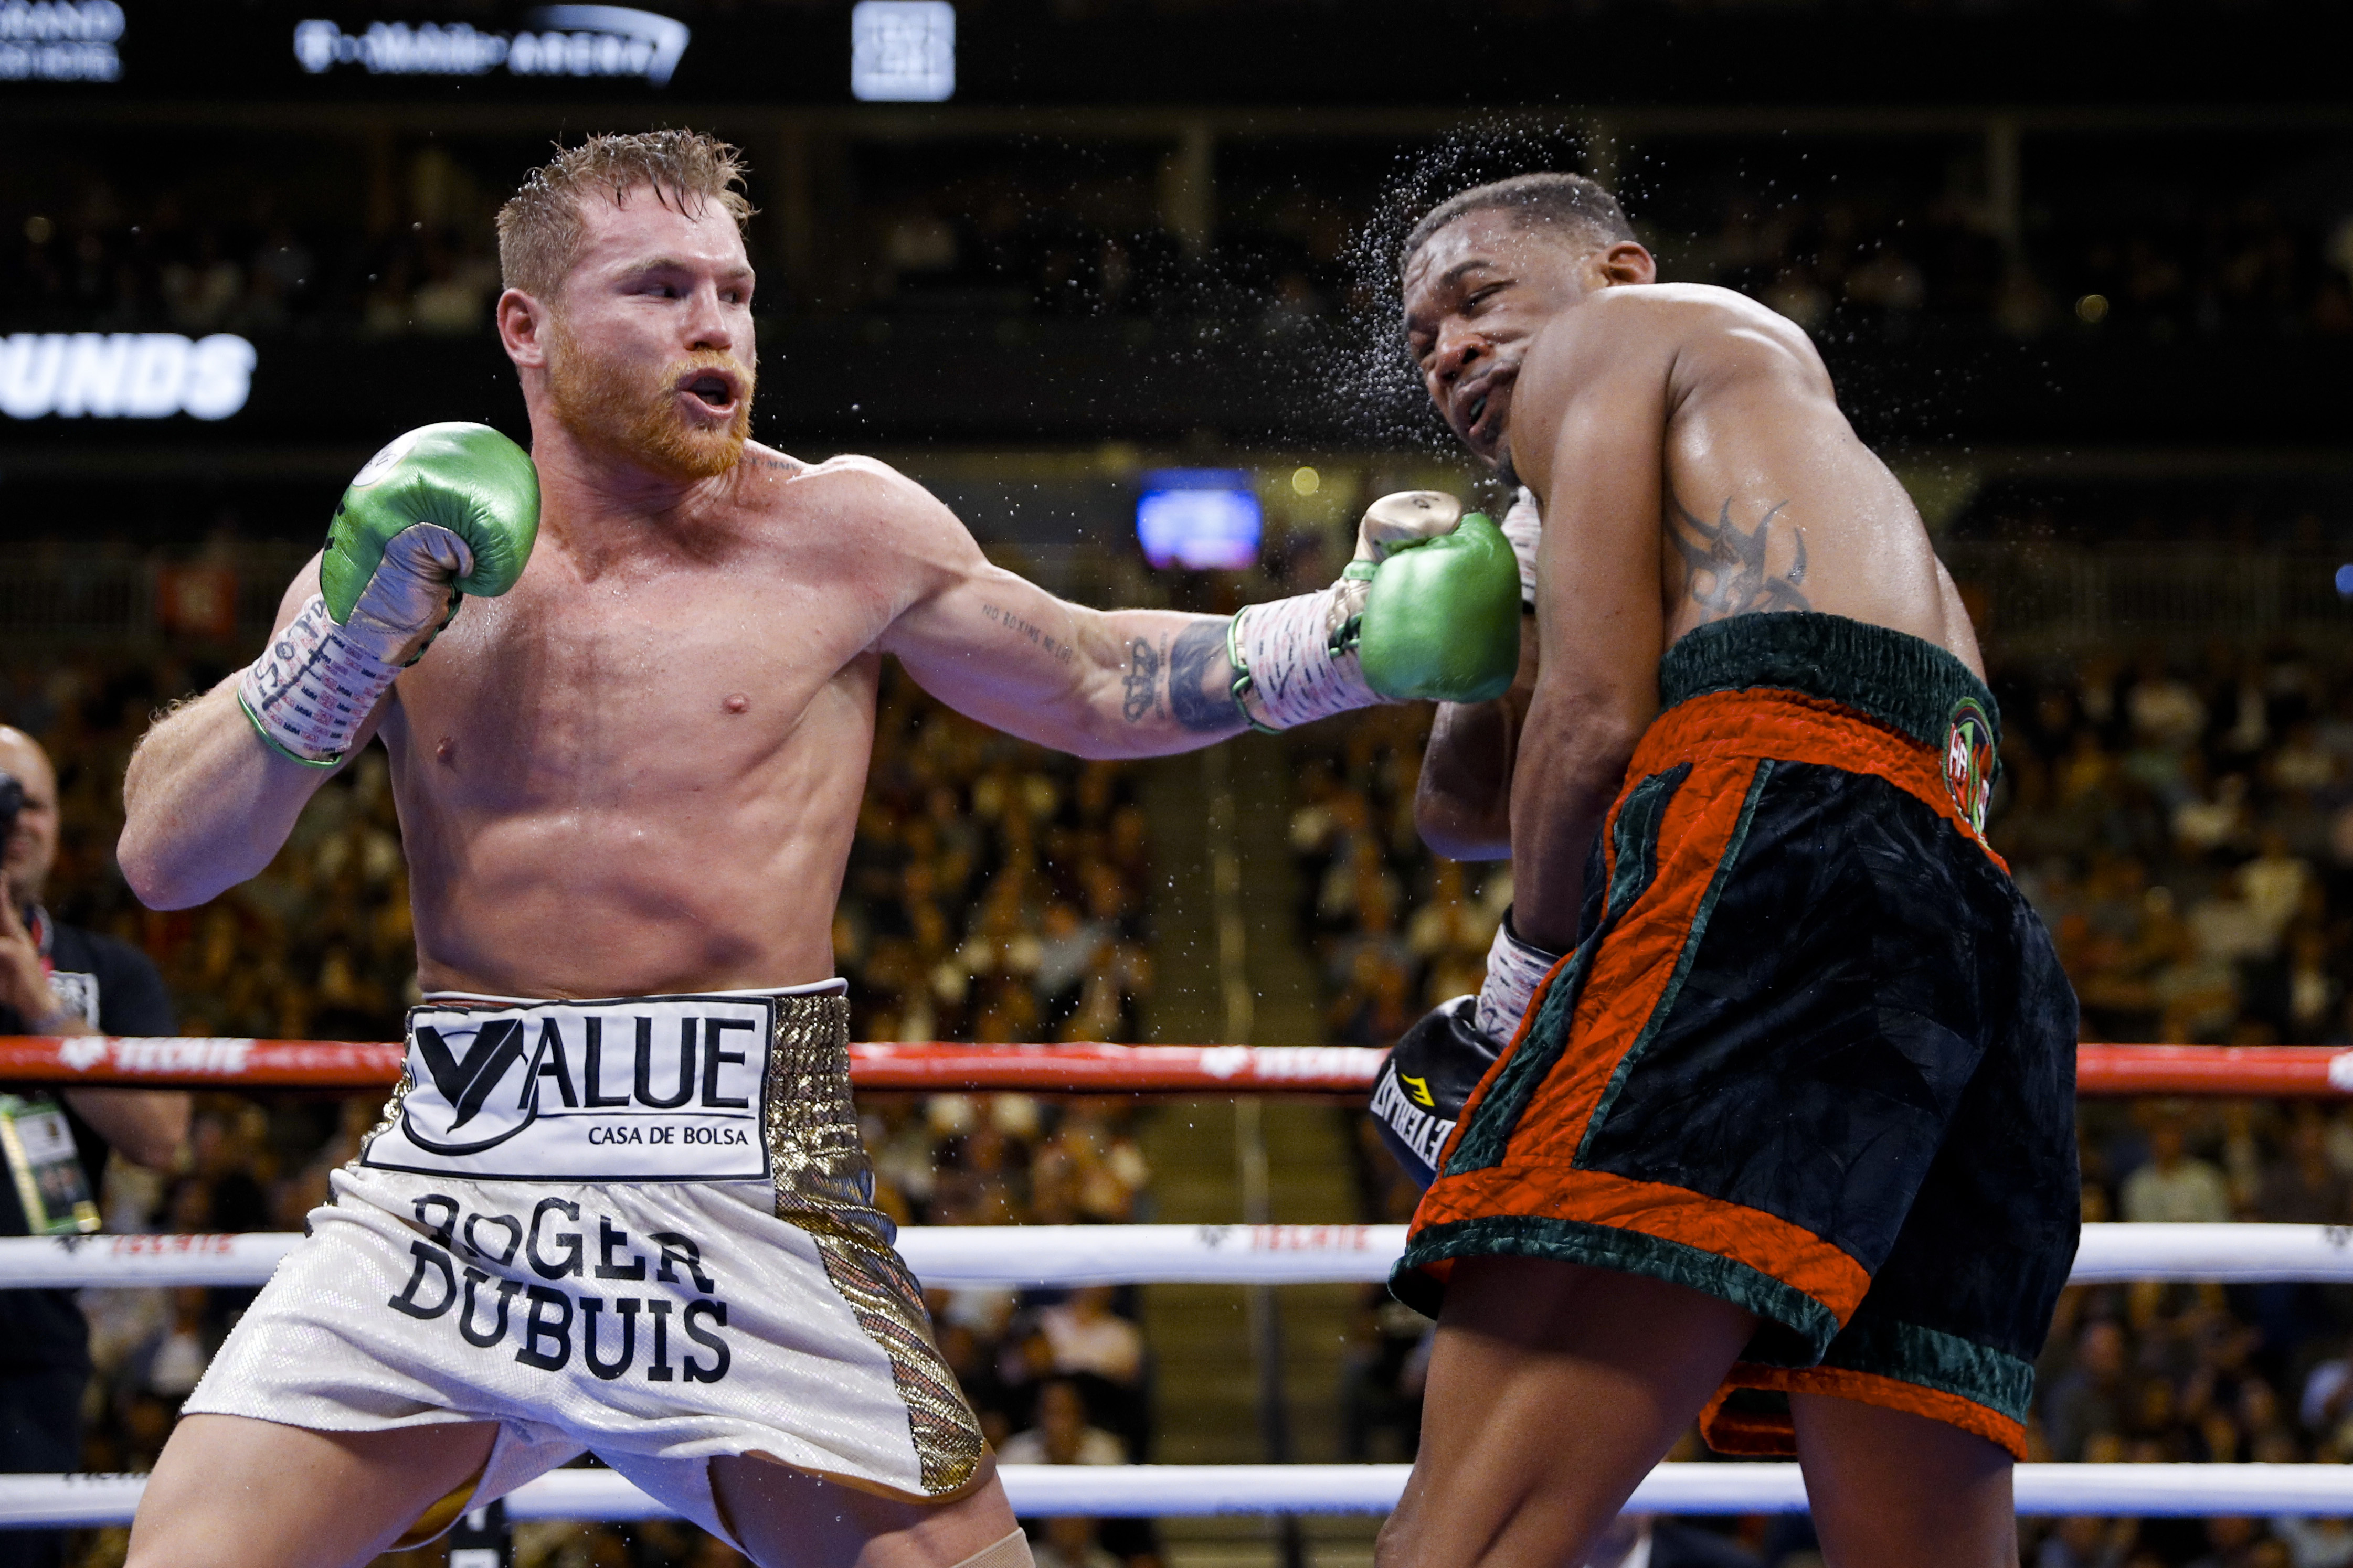 Canelo Alvarez added the IBF middleweight titles to his WBA and WBC belts after defeating Daniel Jacobs